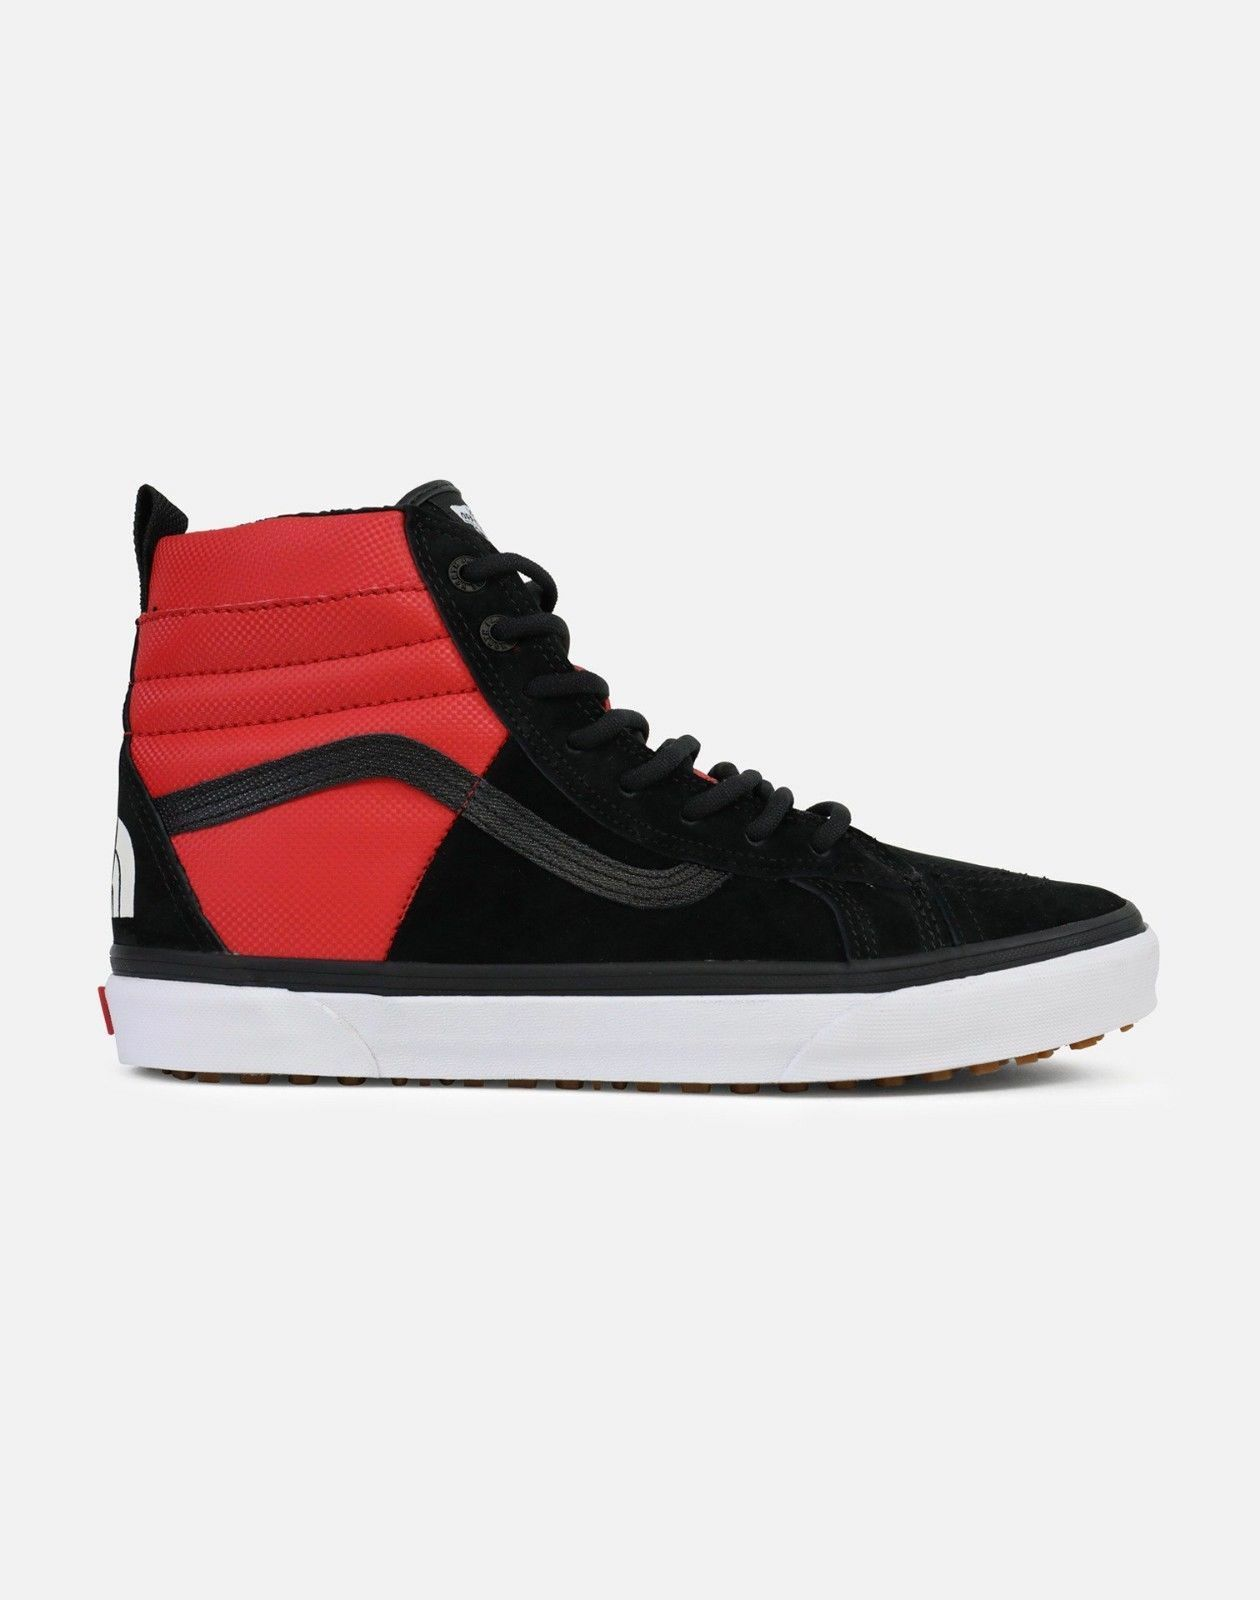 Vans North Face Sk8-Hi MTE DX Black Red White VN0A3DQ5QWS men size 7.5-13